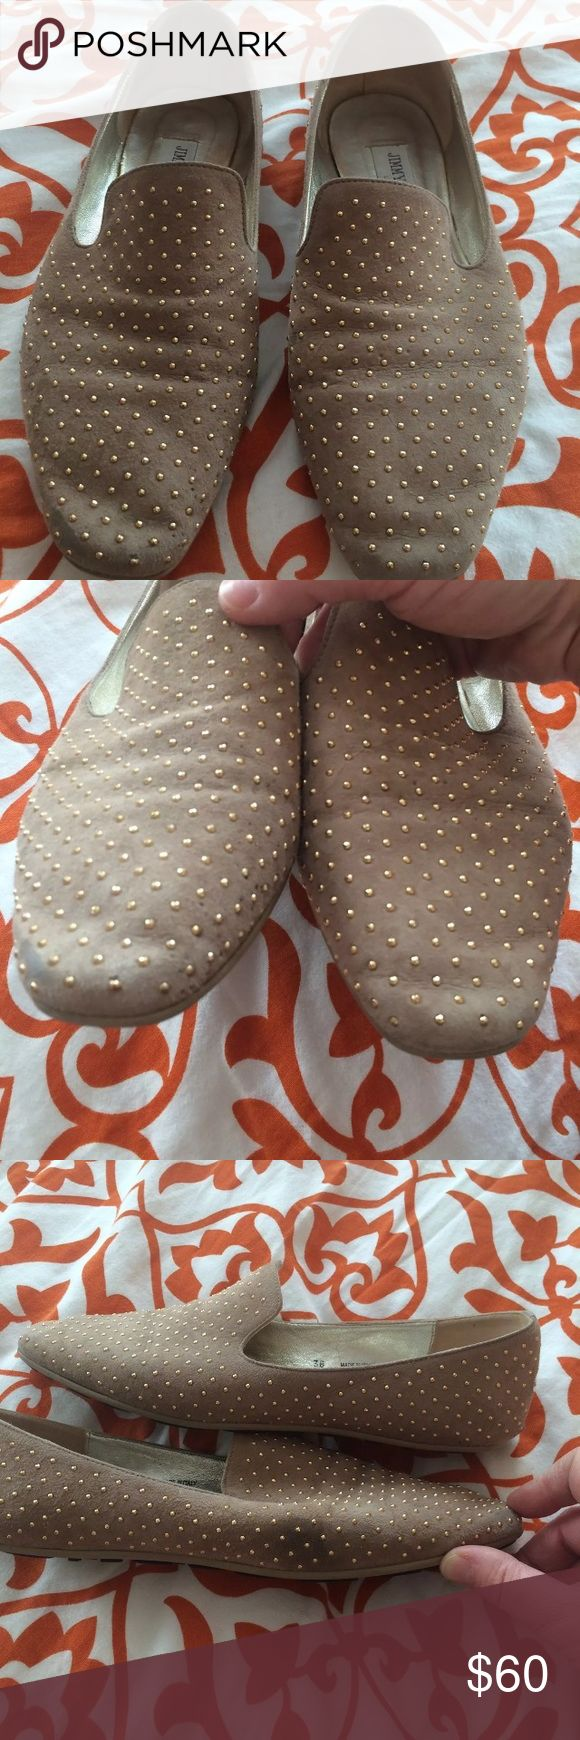 Jimmy Choo studded smoking slipper shoes Beige jimmy choo smoking slippers with gold studs. The soles are in excellent condition.  The shoes have a scuff mark on the right shoe by the little toe area. See pic. The fronts also have slight scuffing but it's in light color so they blend in. Size 38 in European. Jimmy Choo Shoes Flats & Loafers